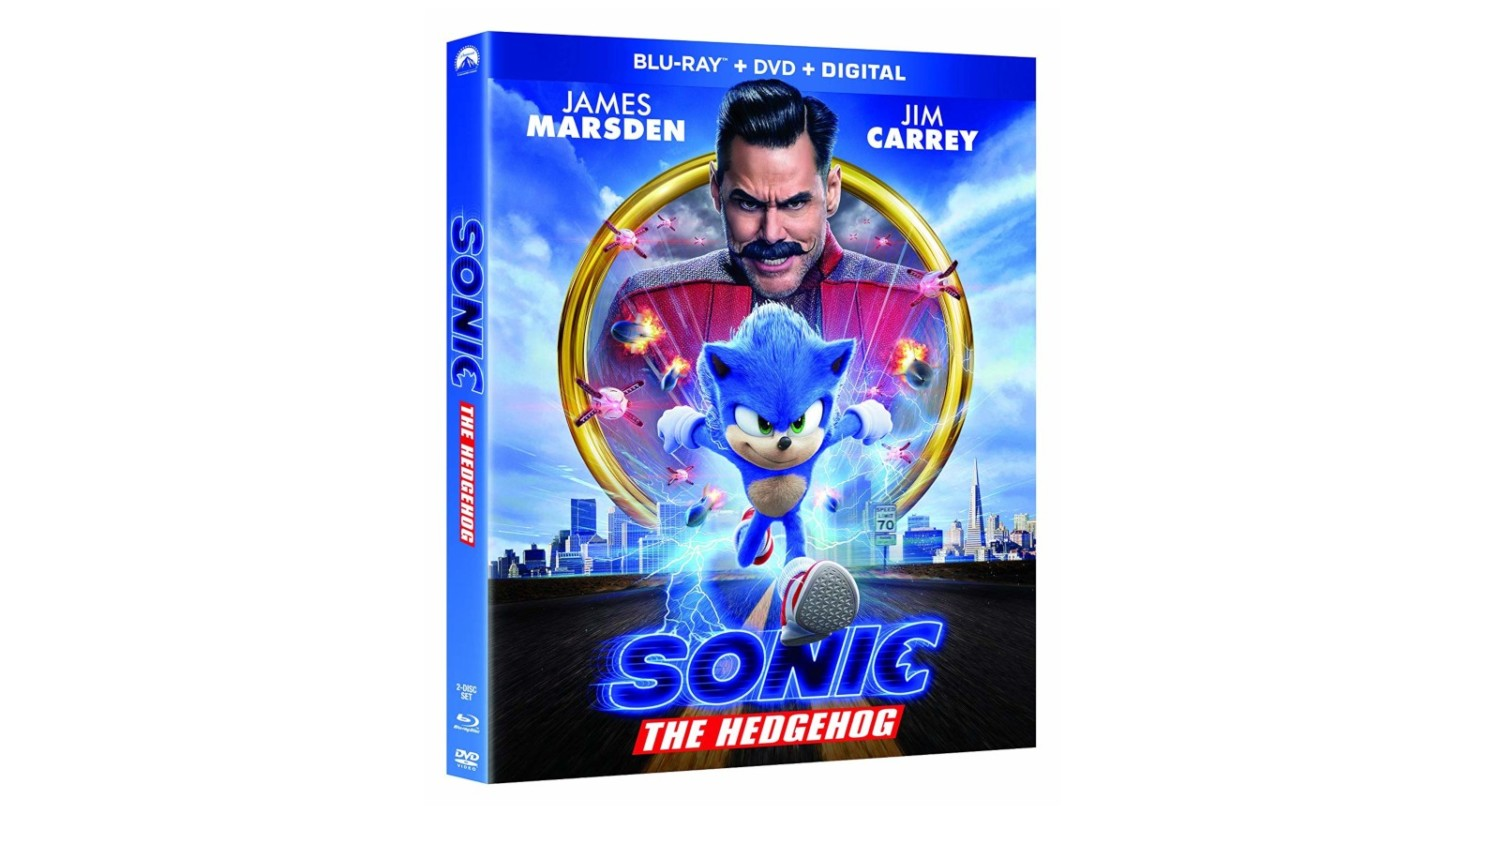 Sonic The Hedgehog Movie Releasing Digitally March 31st Physically On May 19th Nintendosoup